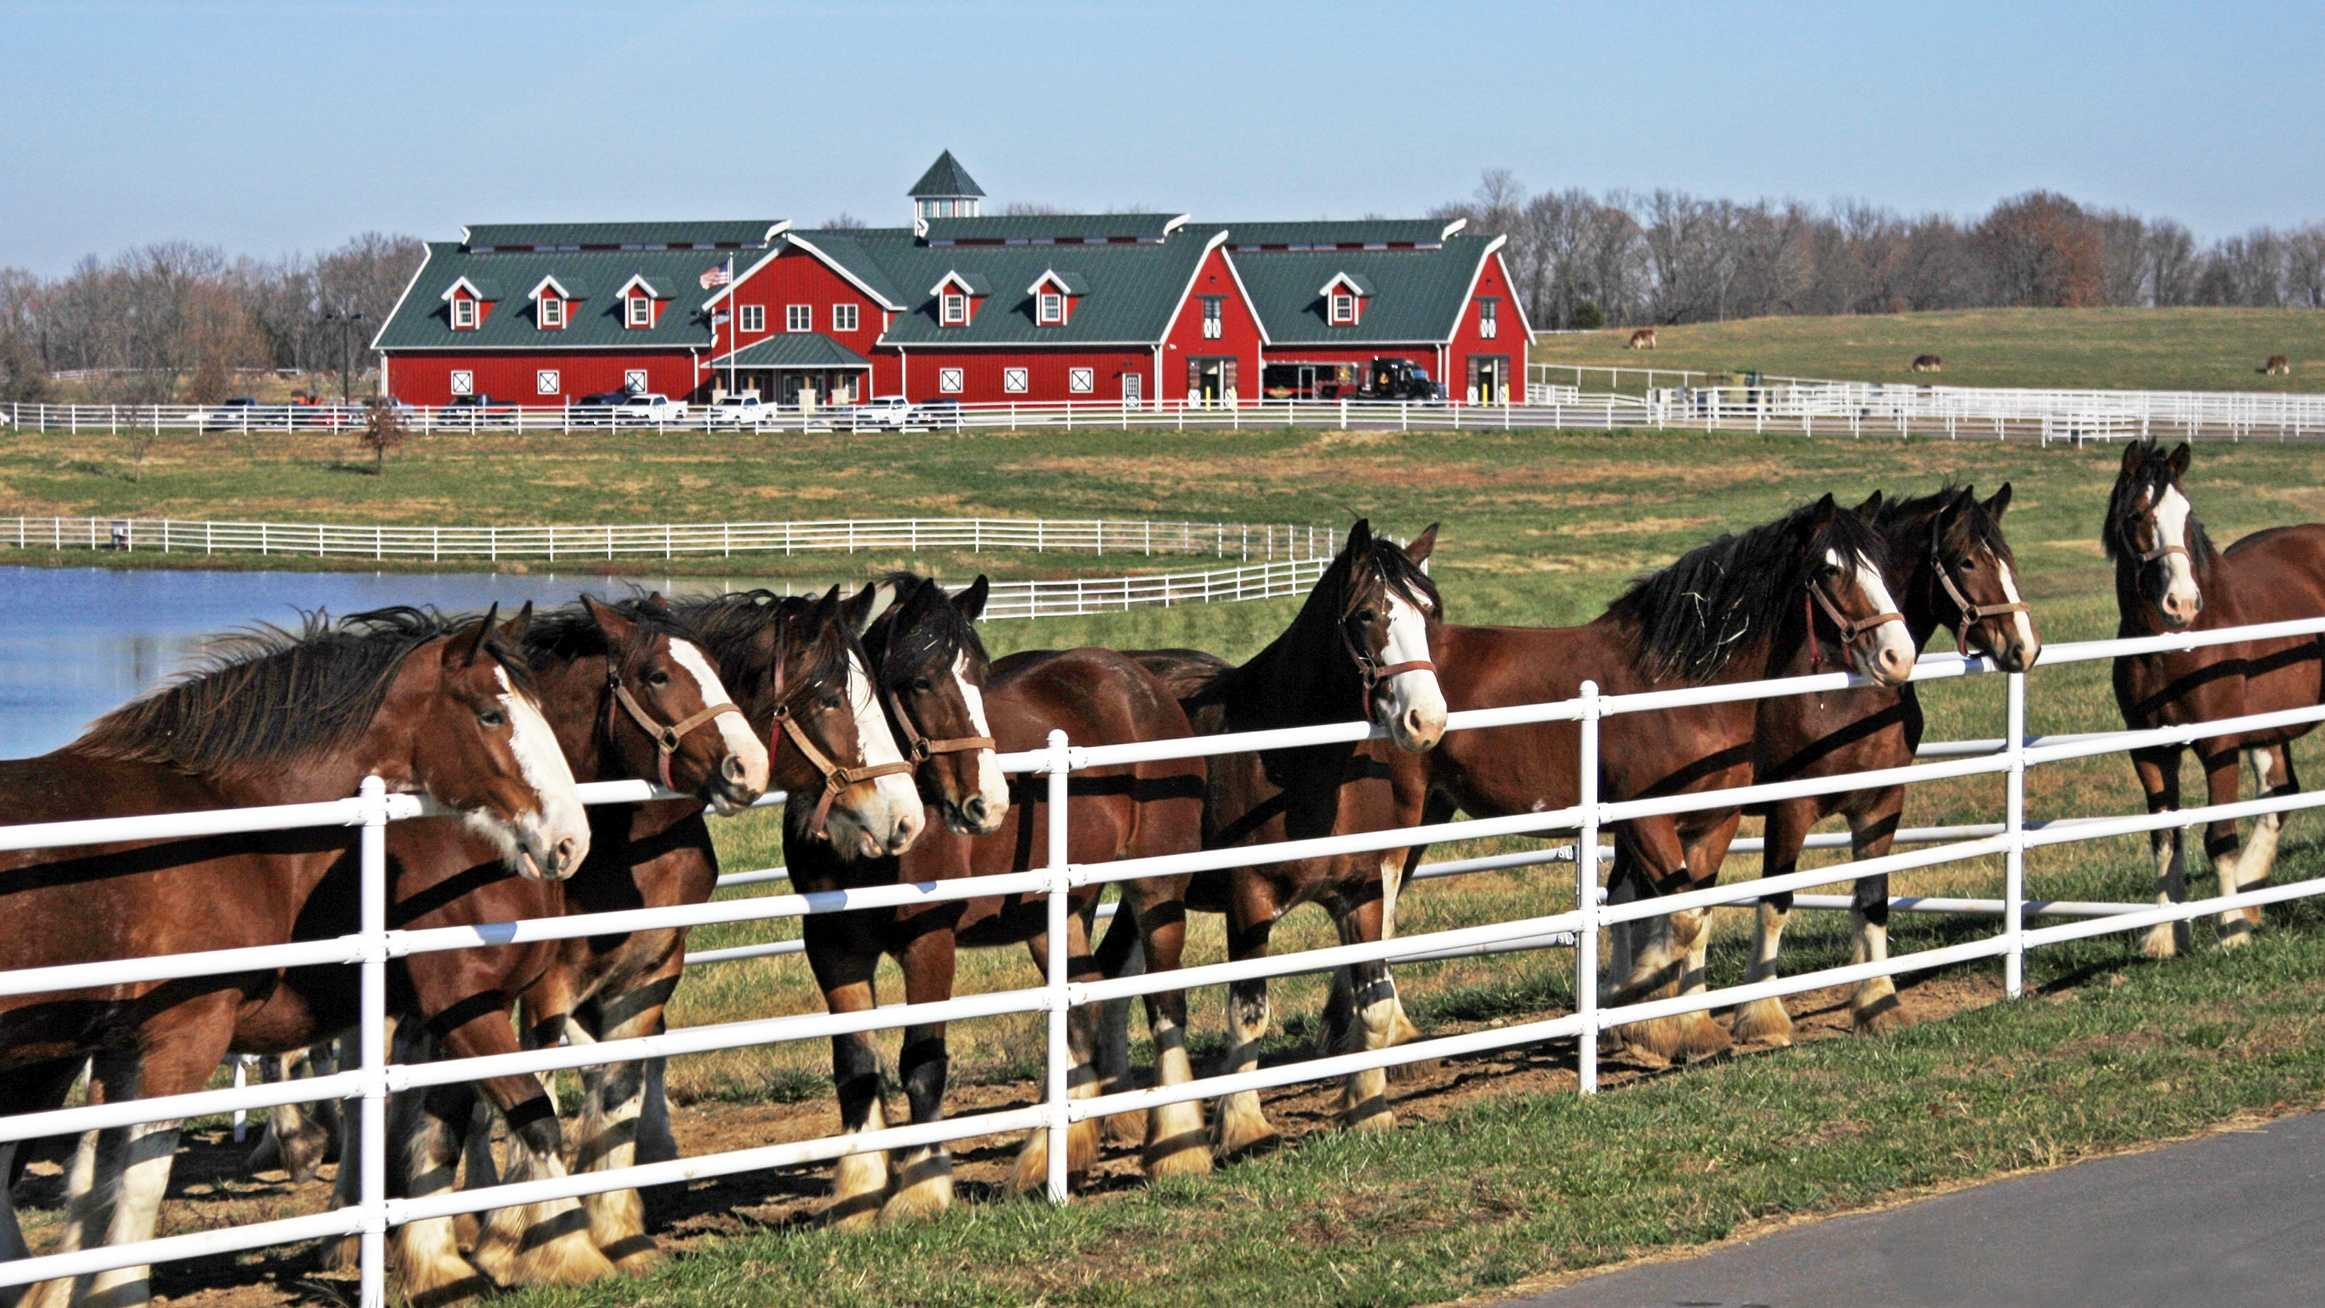 Budweiser's Clydesdale horses